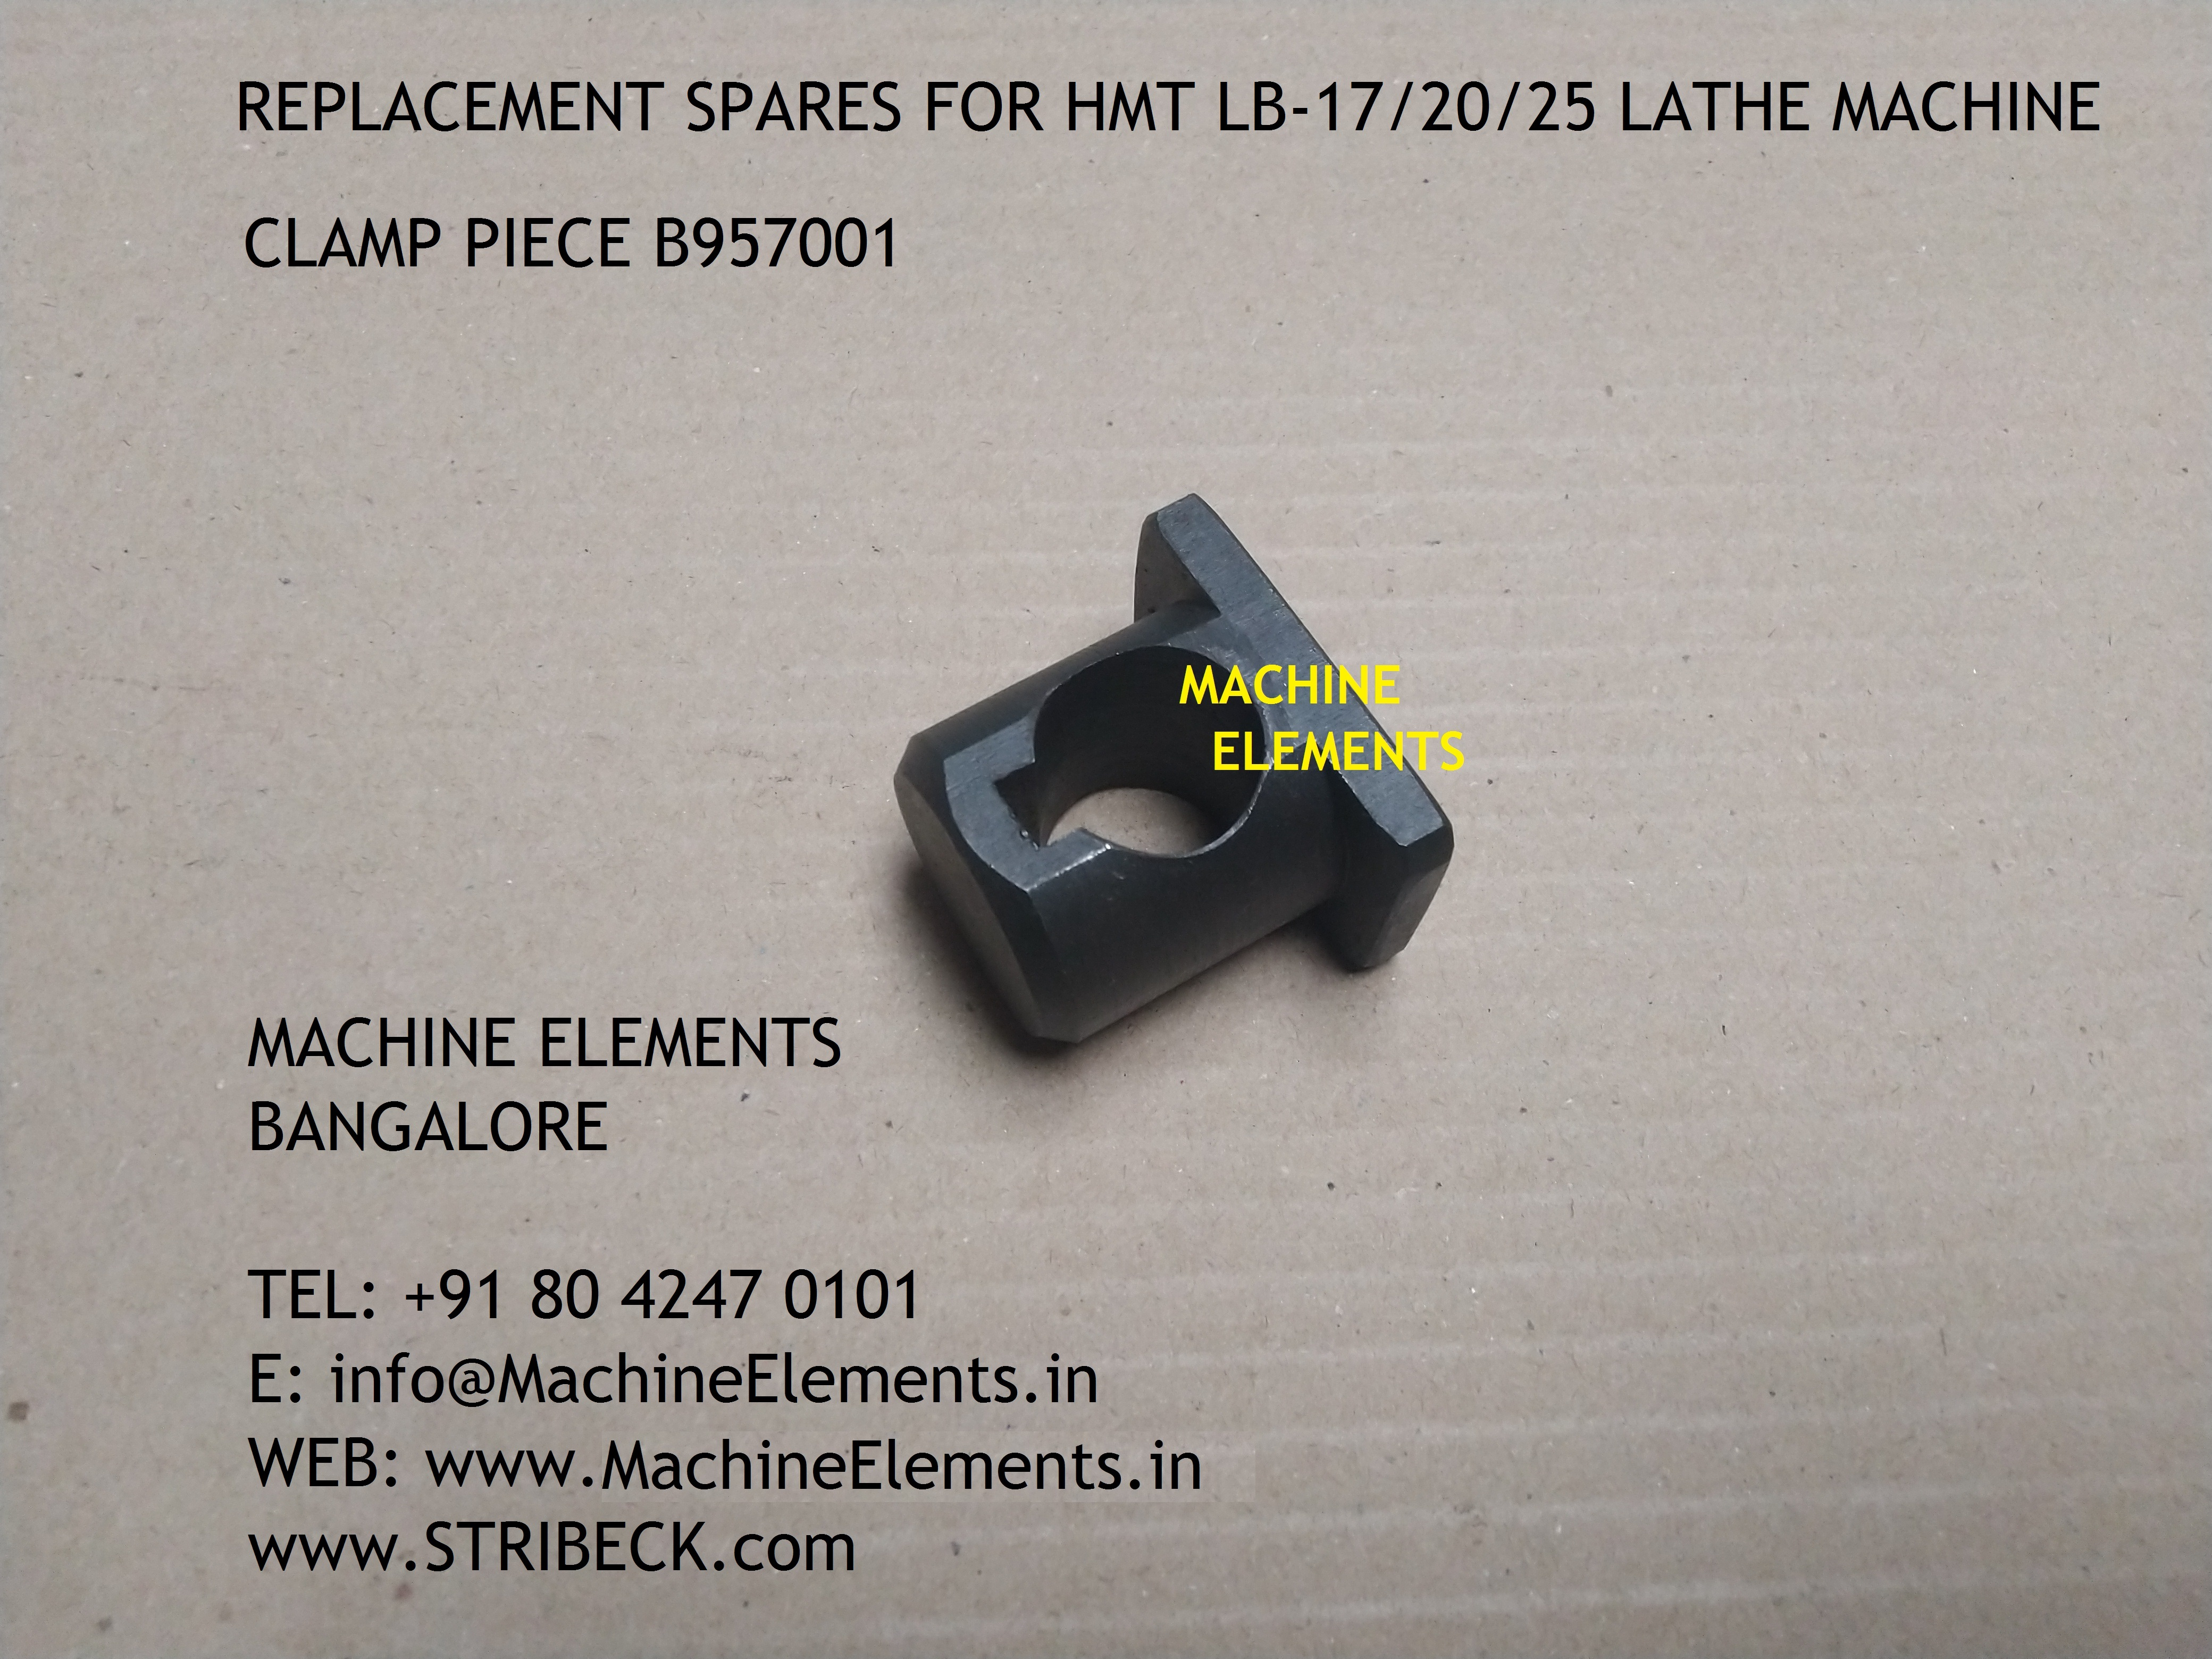 CLAMP PIECE B957001